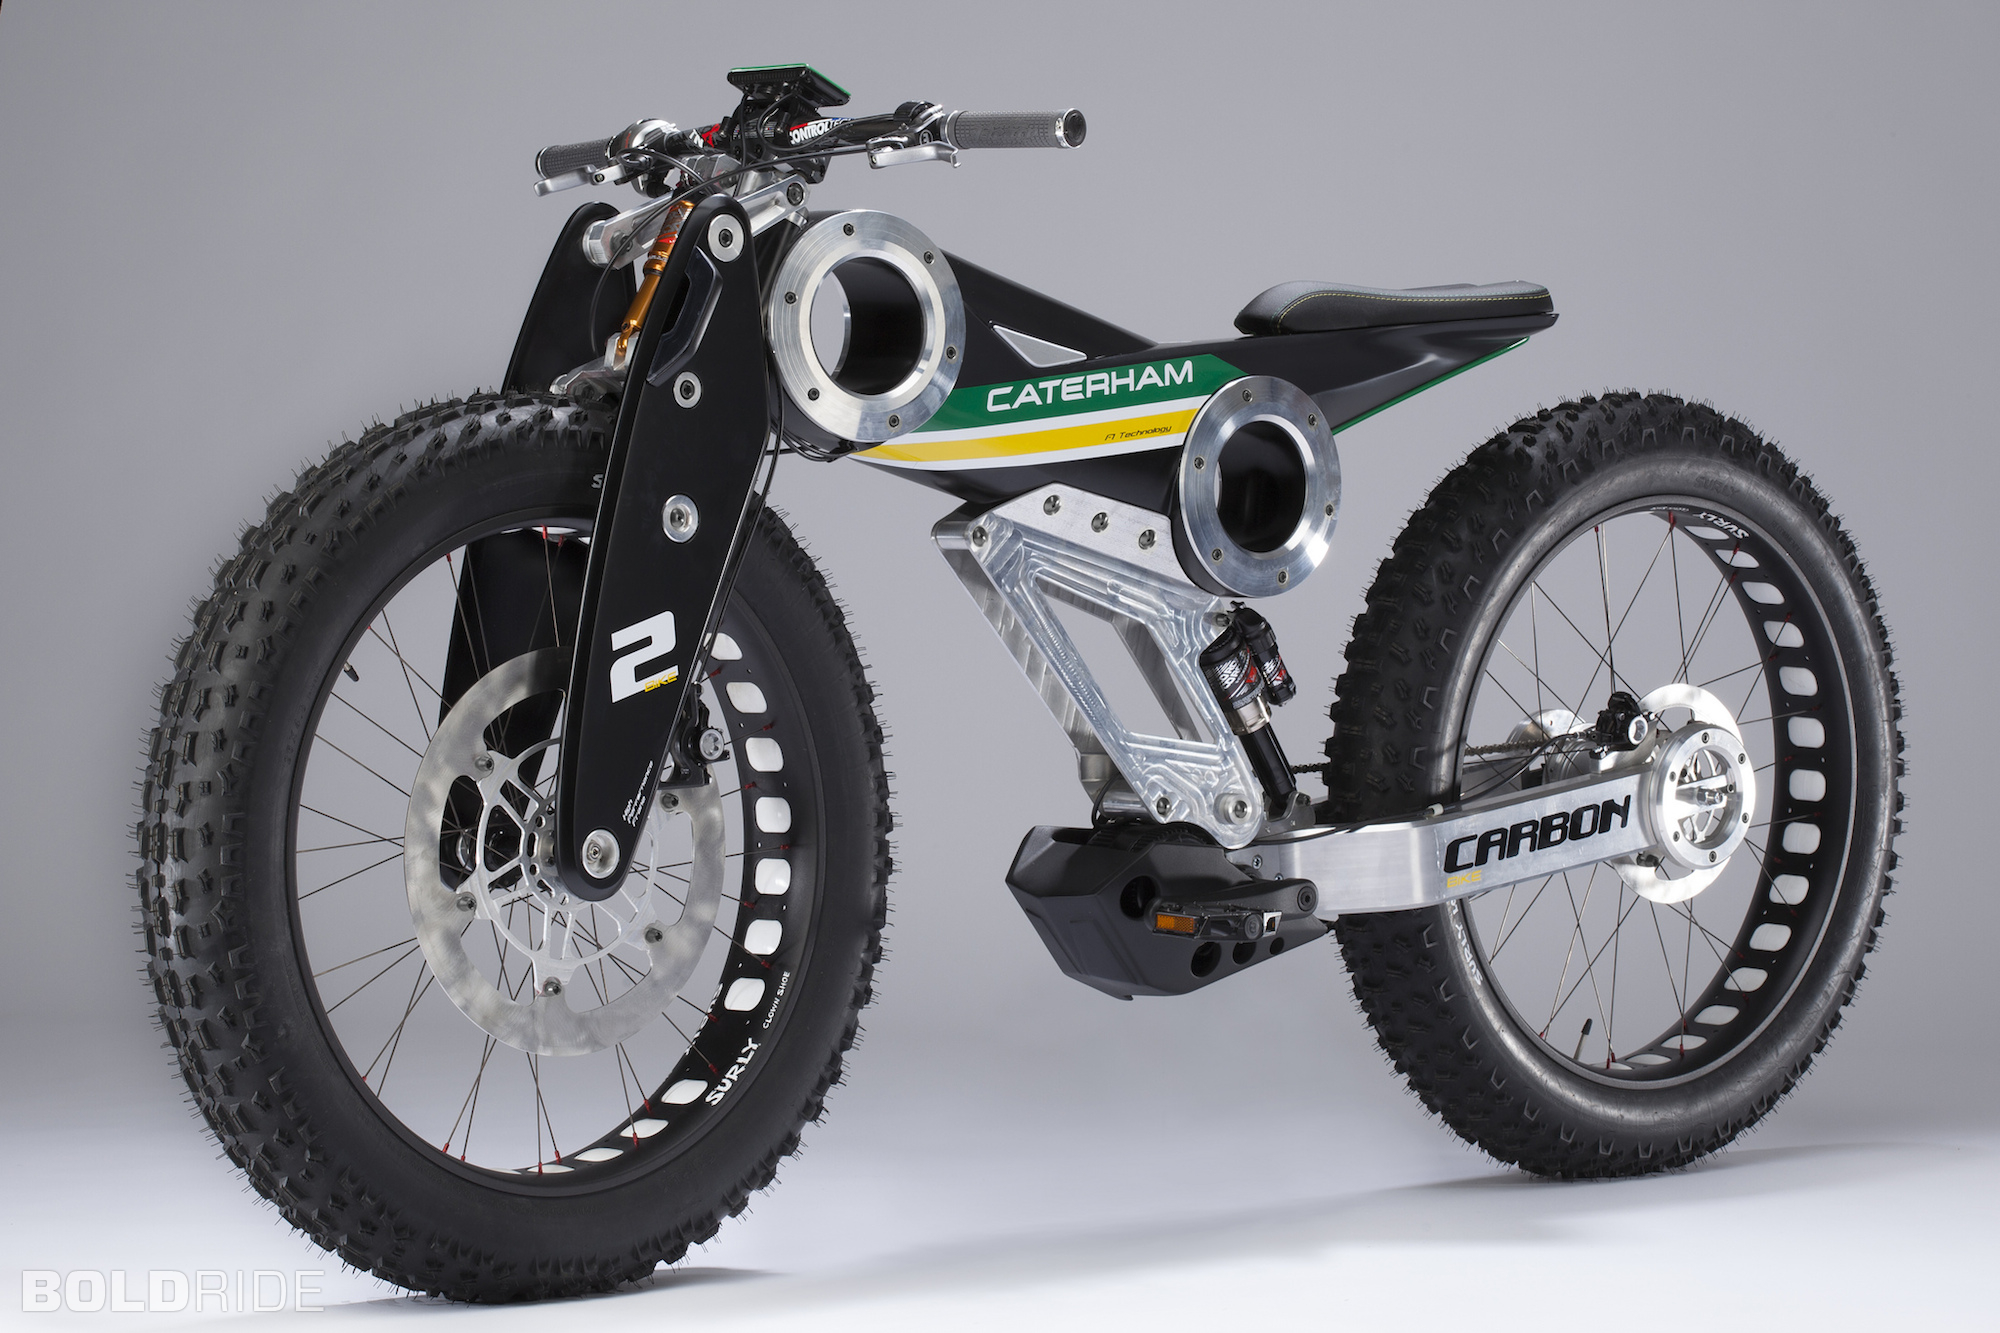 2013 Caterham Carbon E-Bike 1920 x 1080